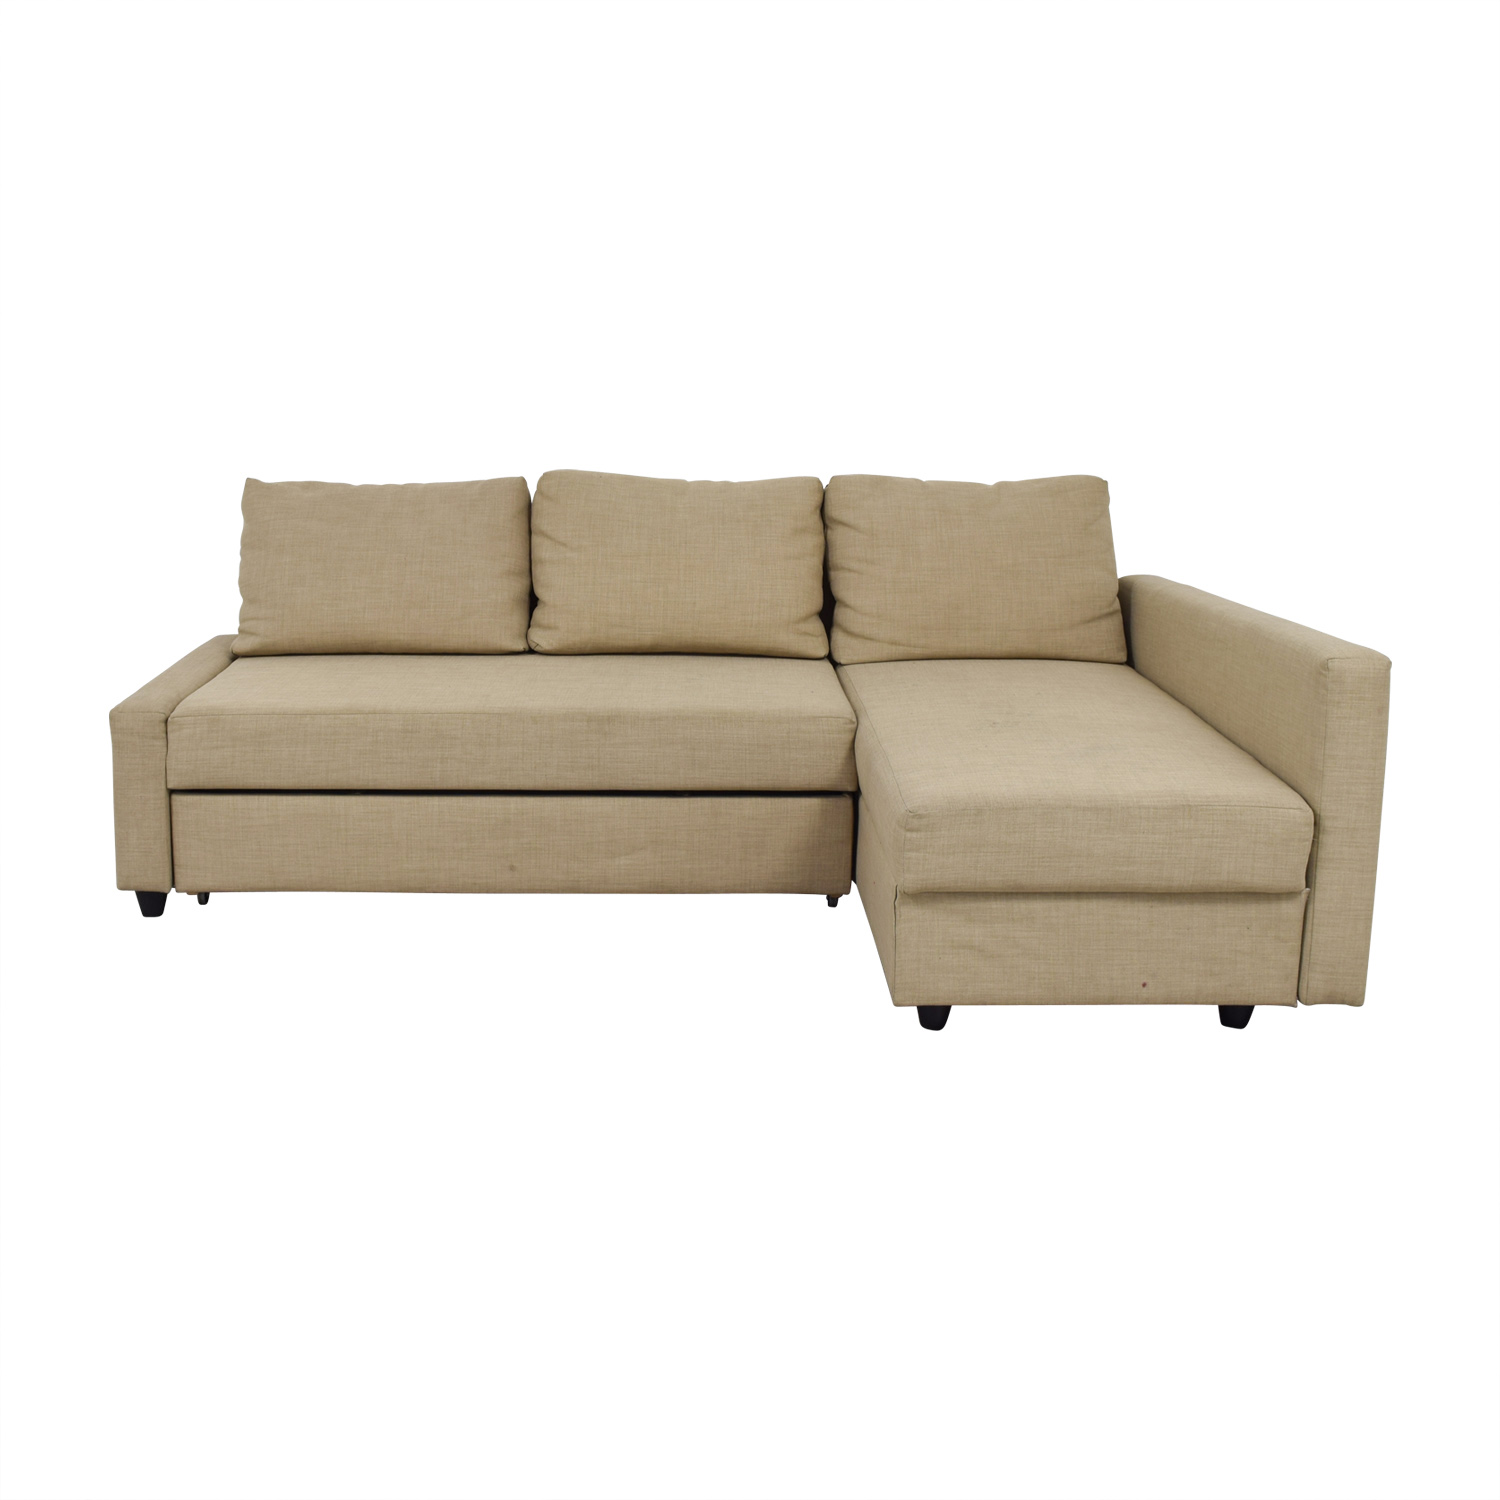 ikea sofa sleeper sectional costume 36 off friheten beige sofas on sale